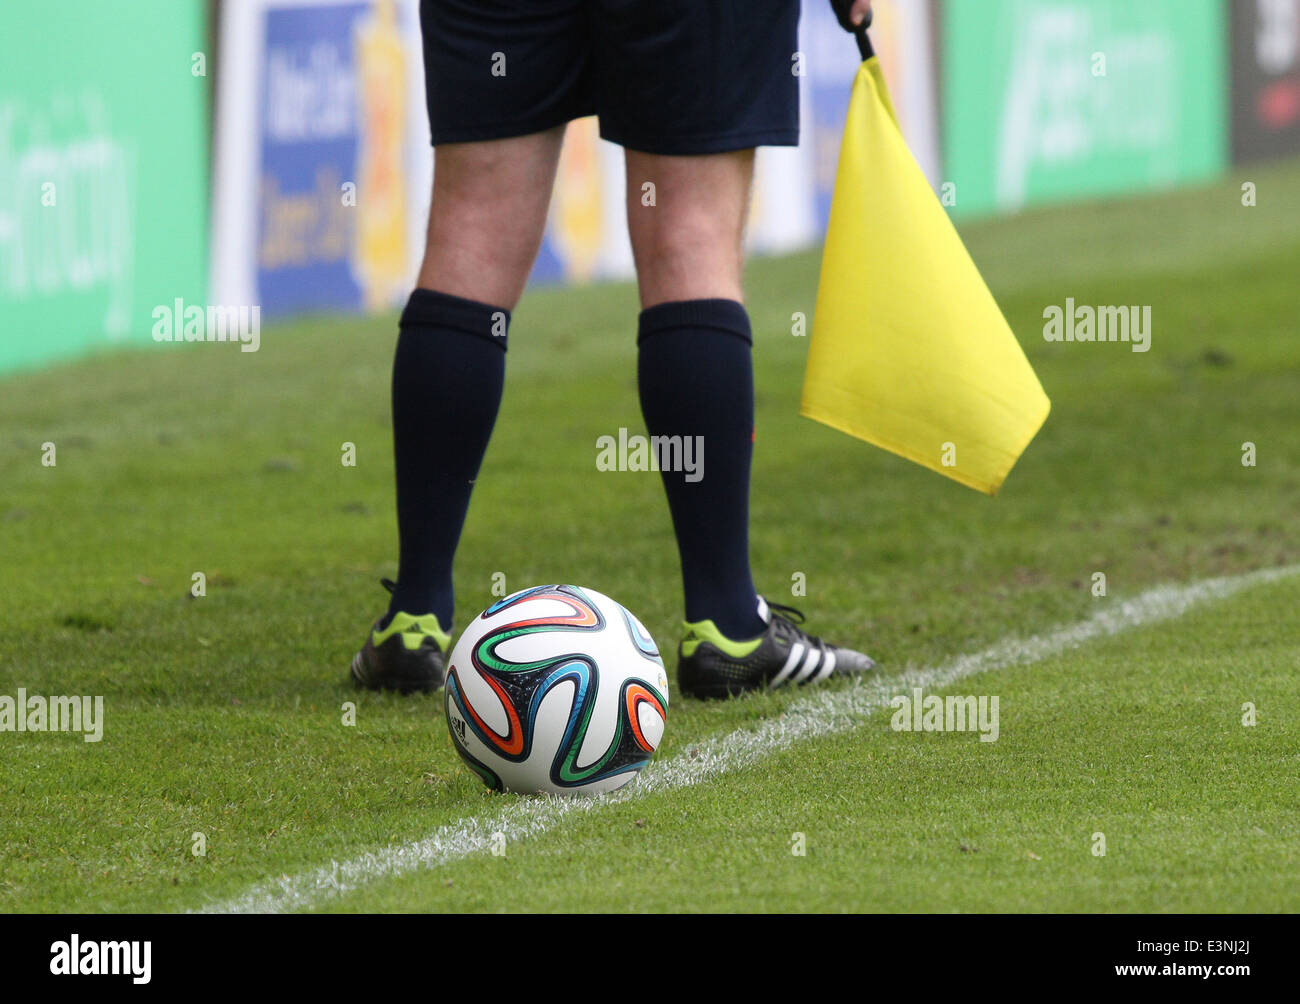 A football at side of pitch with referee's assistant behind it - Stock Image